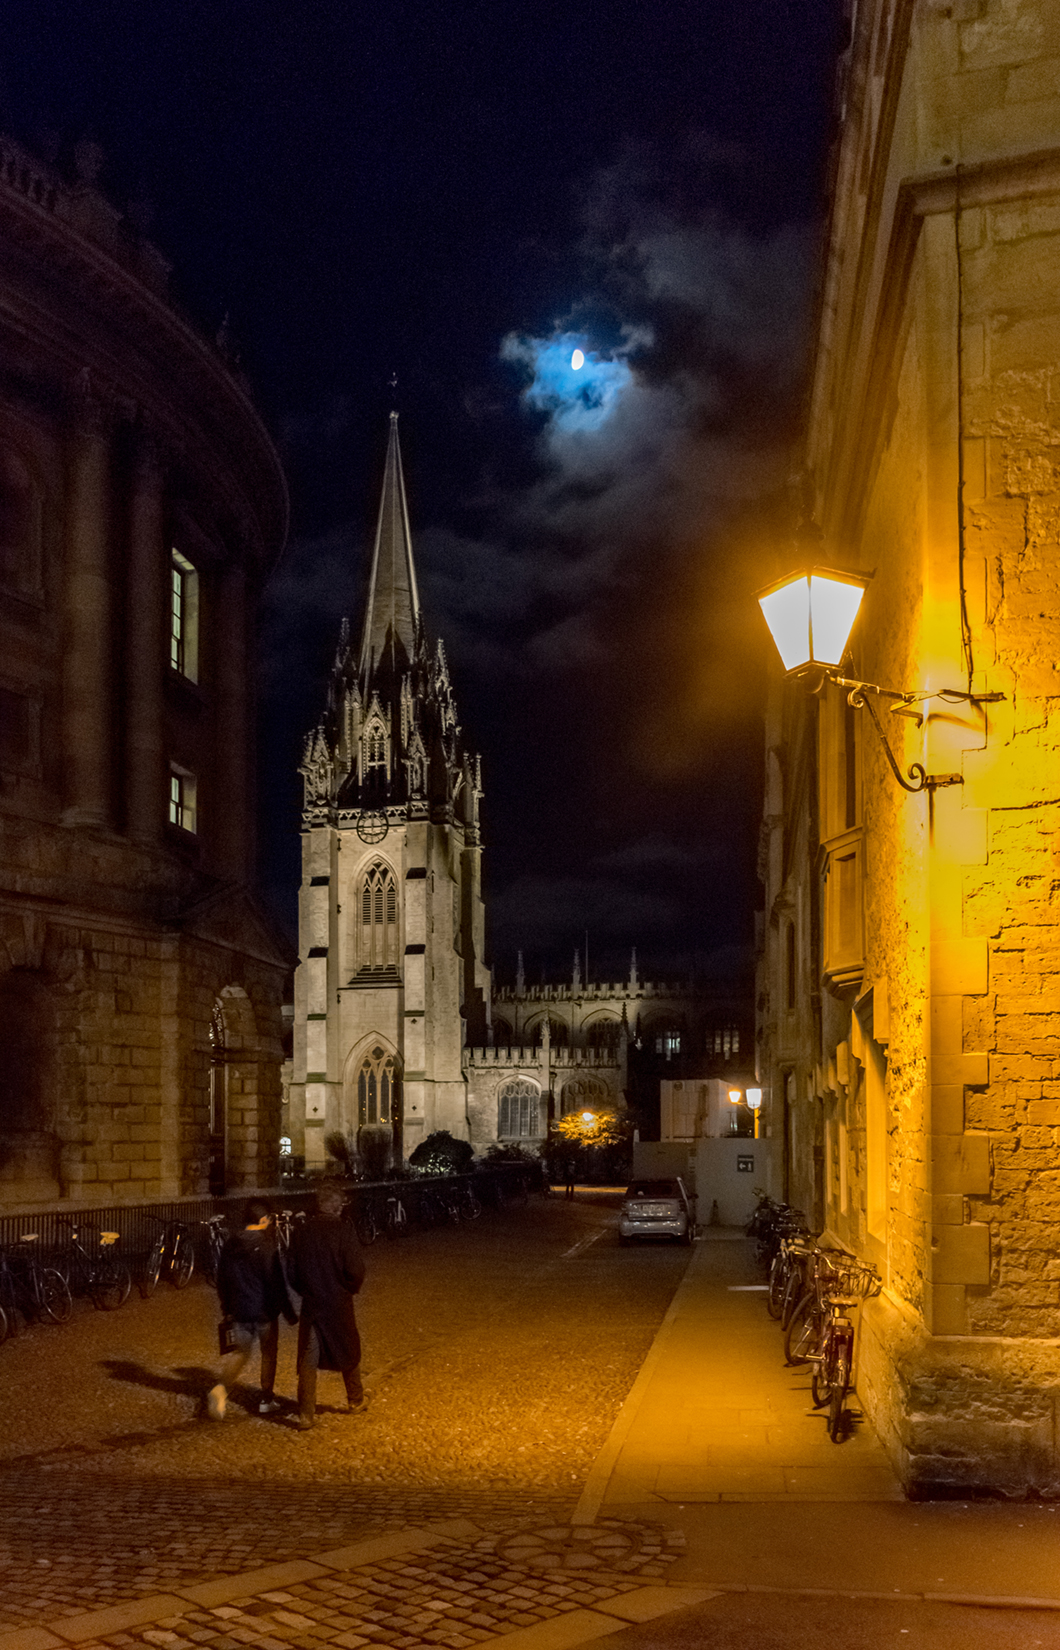 Radcliffe Square and the University Church of St Mary the Virgin